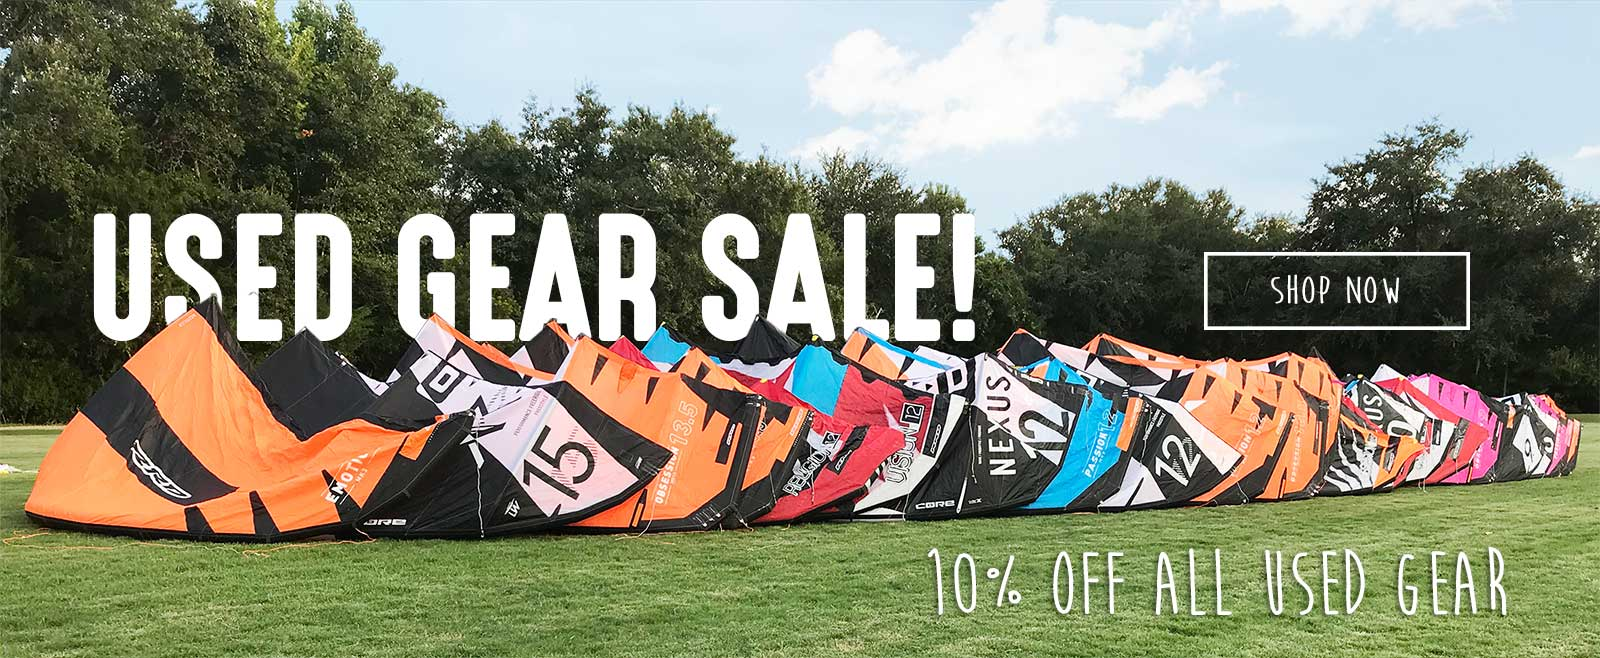 Used Kiteboarding Gear Sale - Shop Now